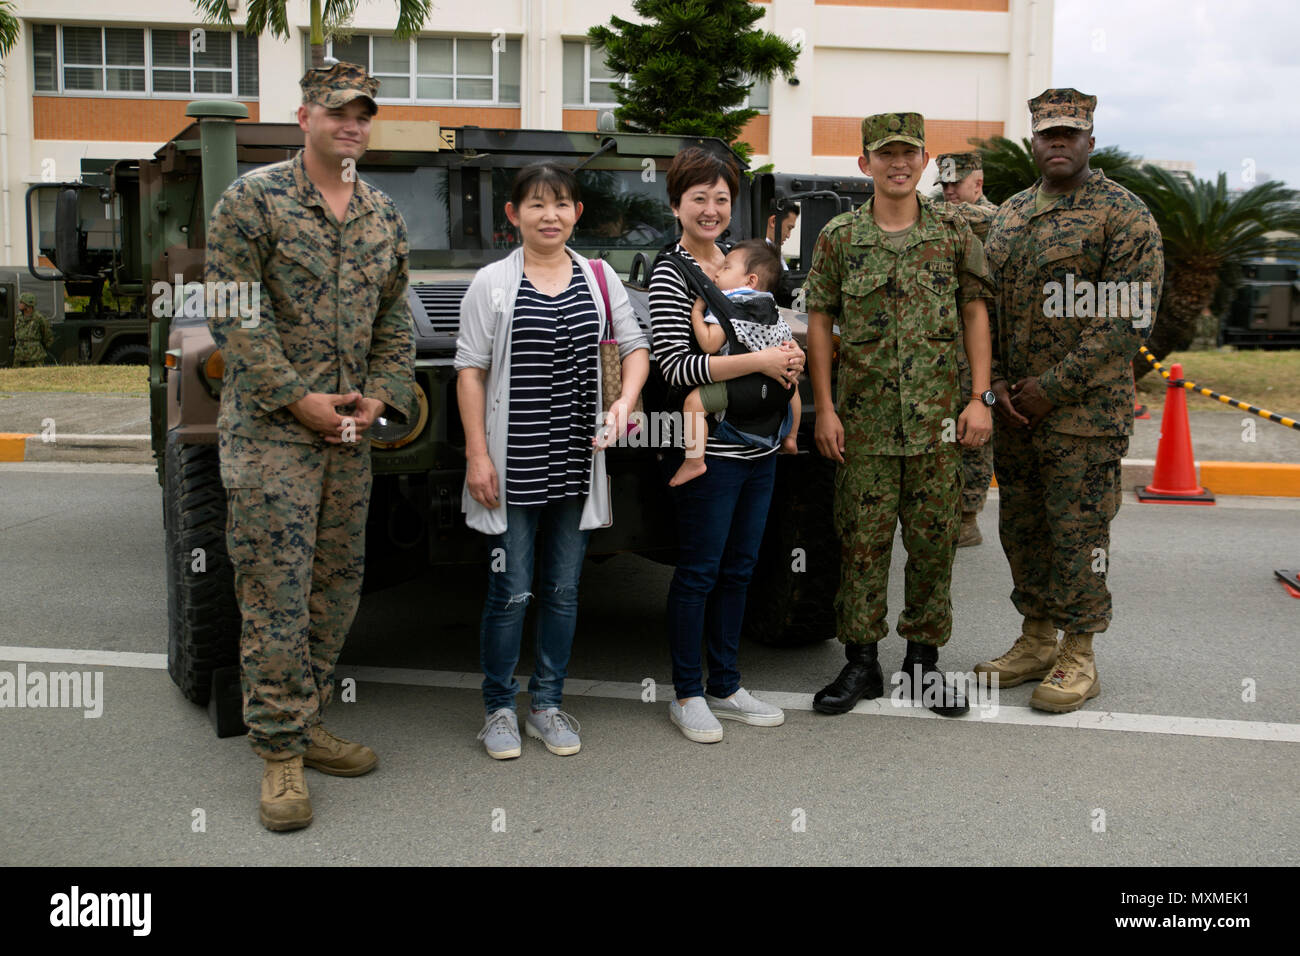 A family poses with Marines and a Japan Ground Self Defense Force service member next to a Humvee Nov. 20, 2016 during the JGSDF Festival on Camp Naha, Okinawa, Japan. The festival celebrated the 6th anniversary of the 15th brigade and the 44th anniversary of Camp Naha. Marines with Combat Assault Battalion, 3rd Marine Division, III Marine Expeditionary Force brought the Humvee, a Light Armored Vehicle and an Assault Amphibious Vehicle for display. Attendees of the festival were able to take photos with the Marines and their vehicles.  (U.S. Marine Corps photo by Cpl. Jessica Collins) Stock Photo